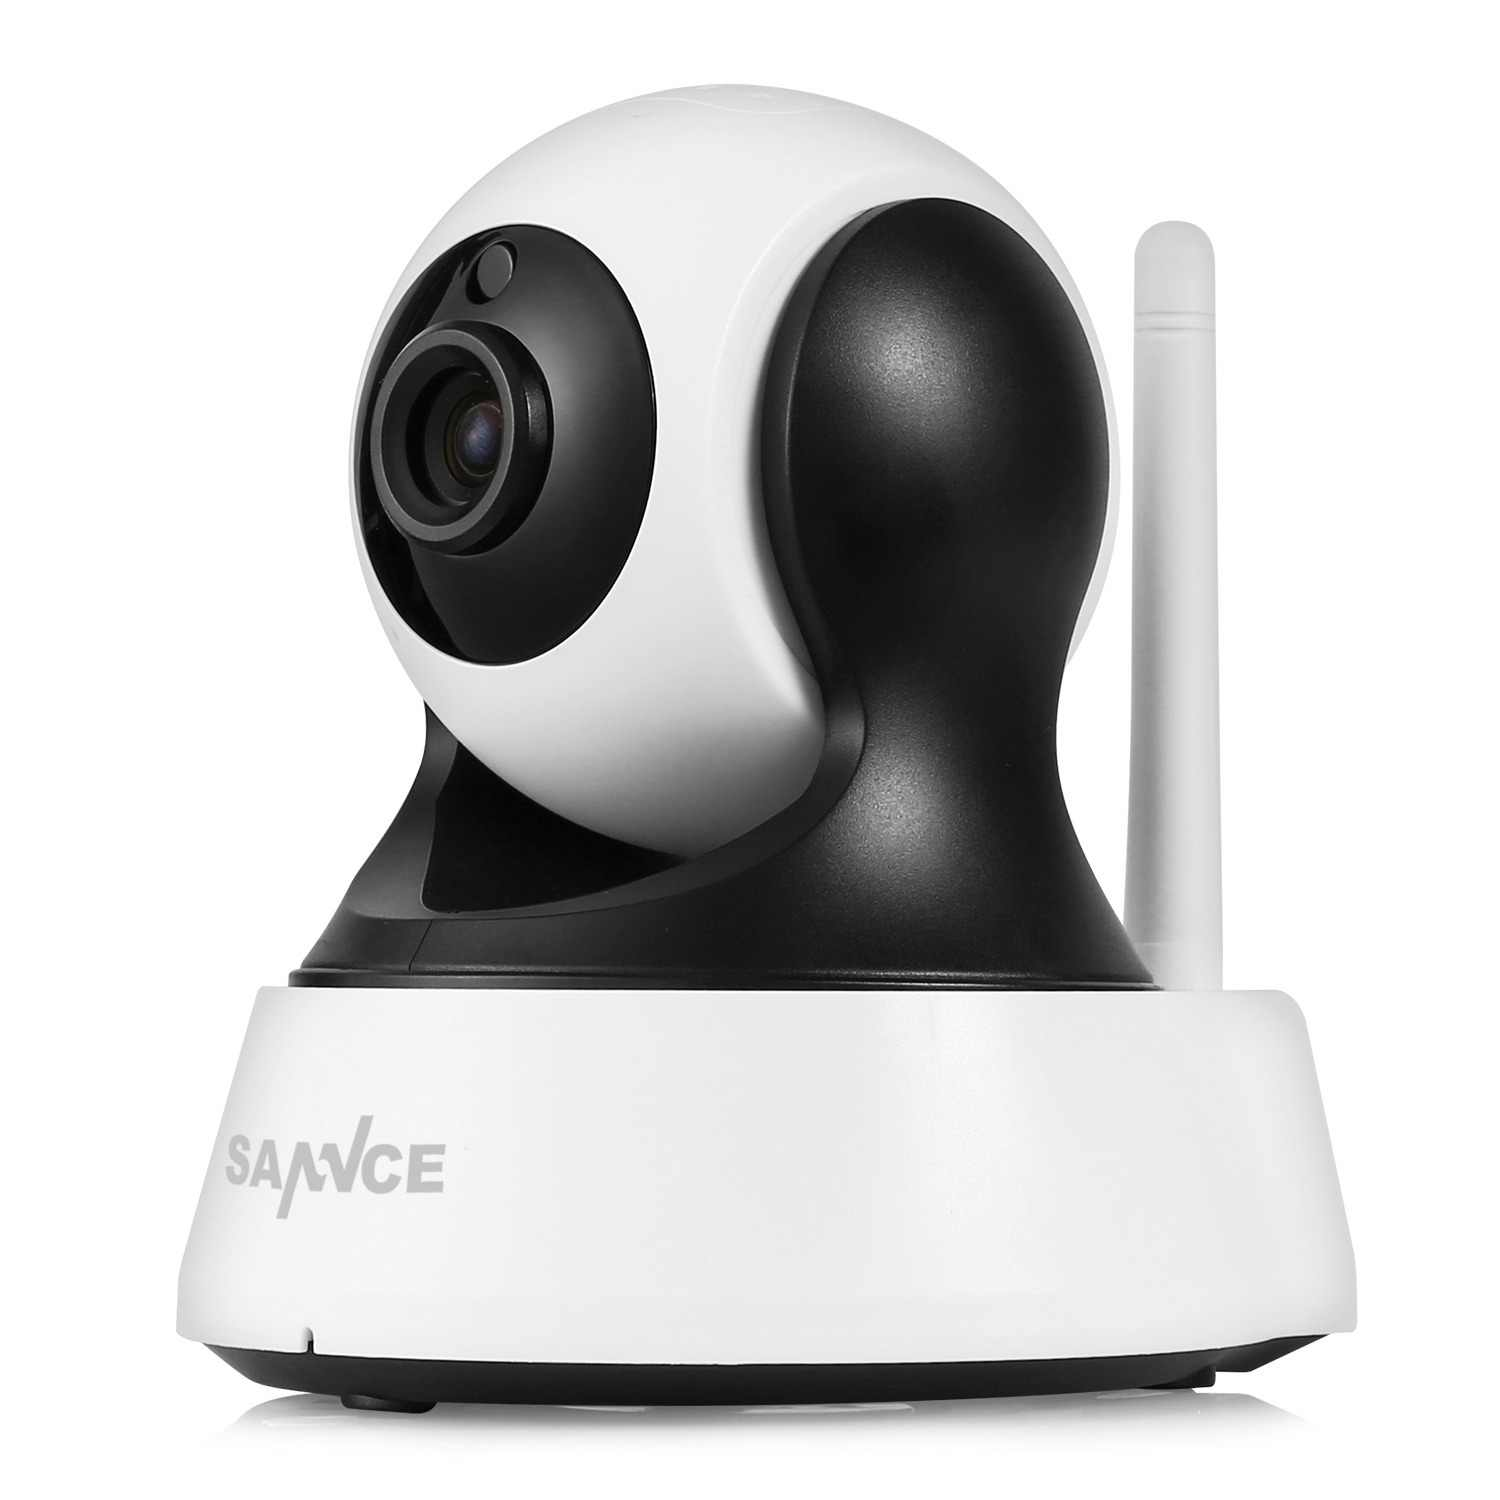 SANNCE 1080P 2.0MP IP Camera Wireless Home Security IP Camera Surveillance Camera Wifi Night Vision CCTV Camera Baby Monitor